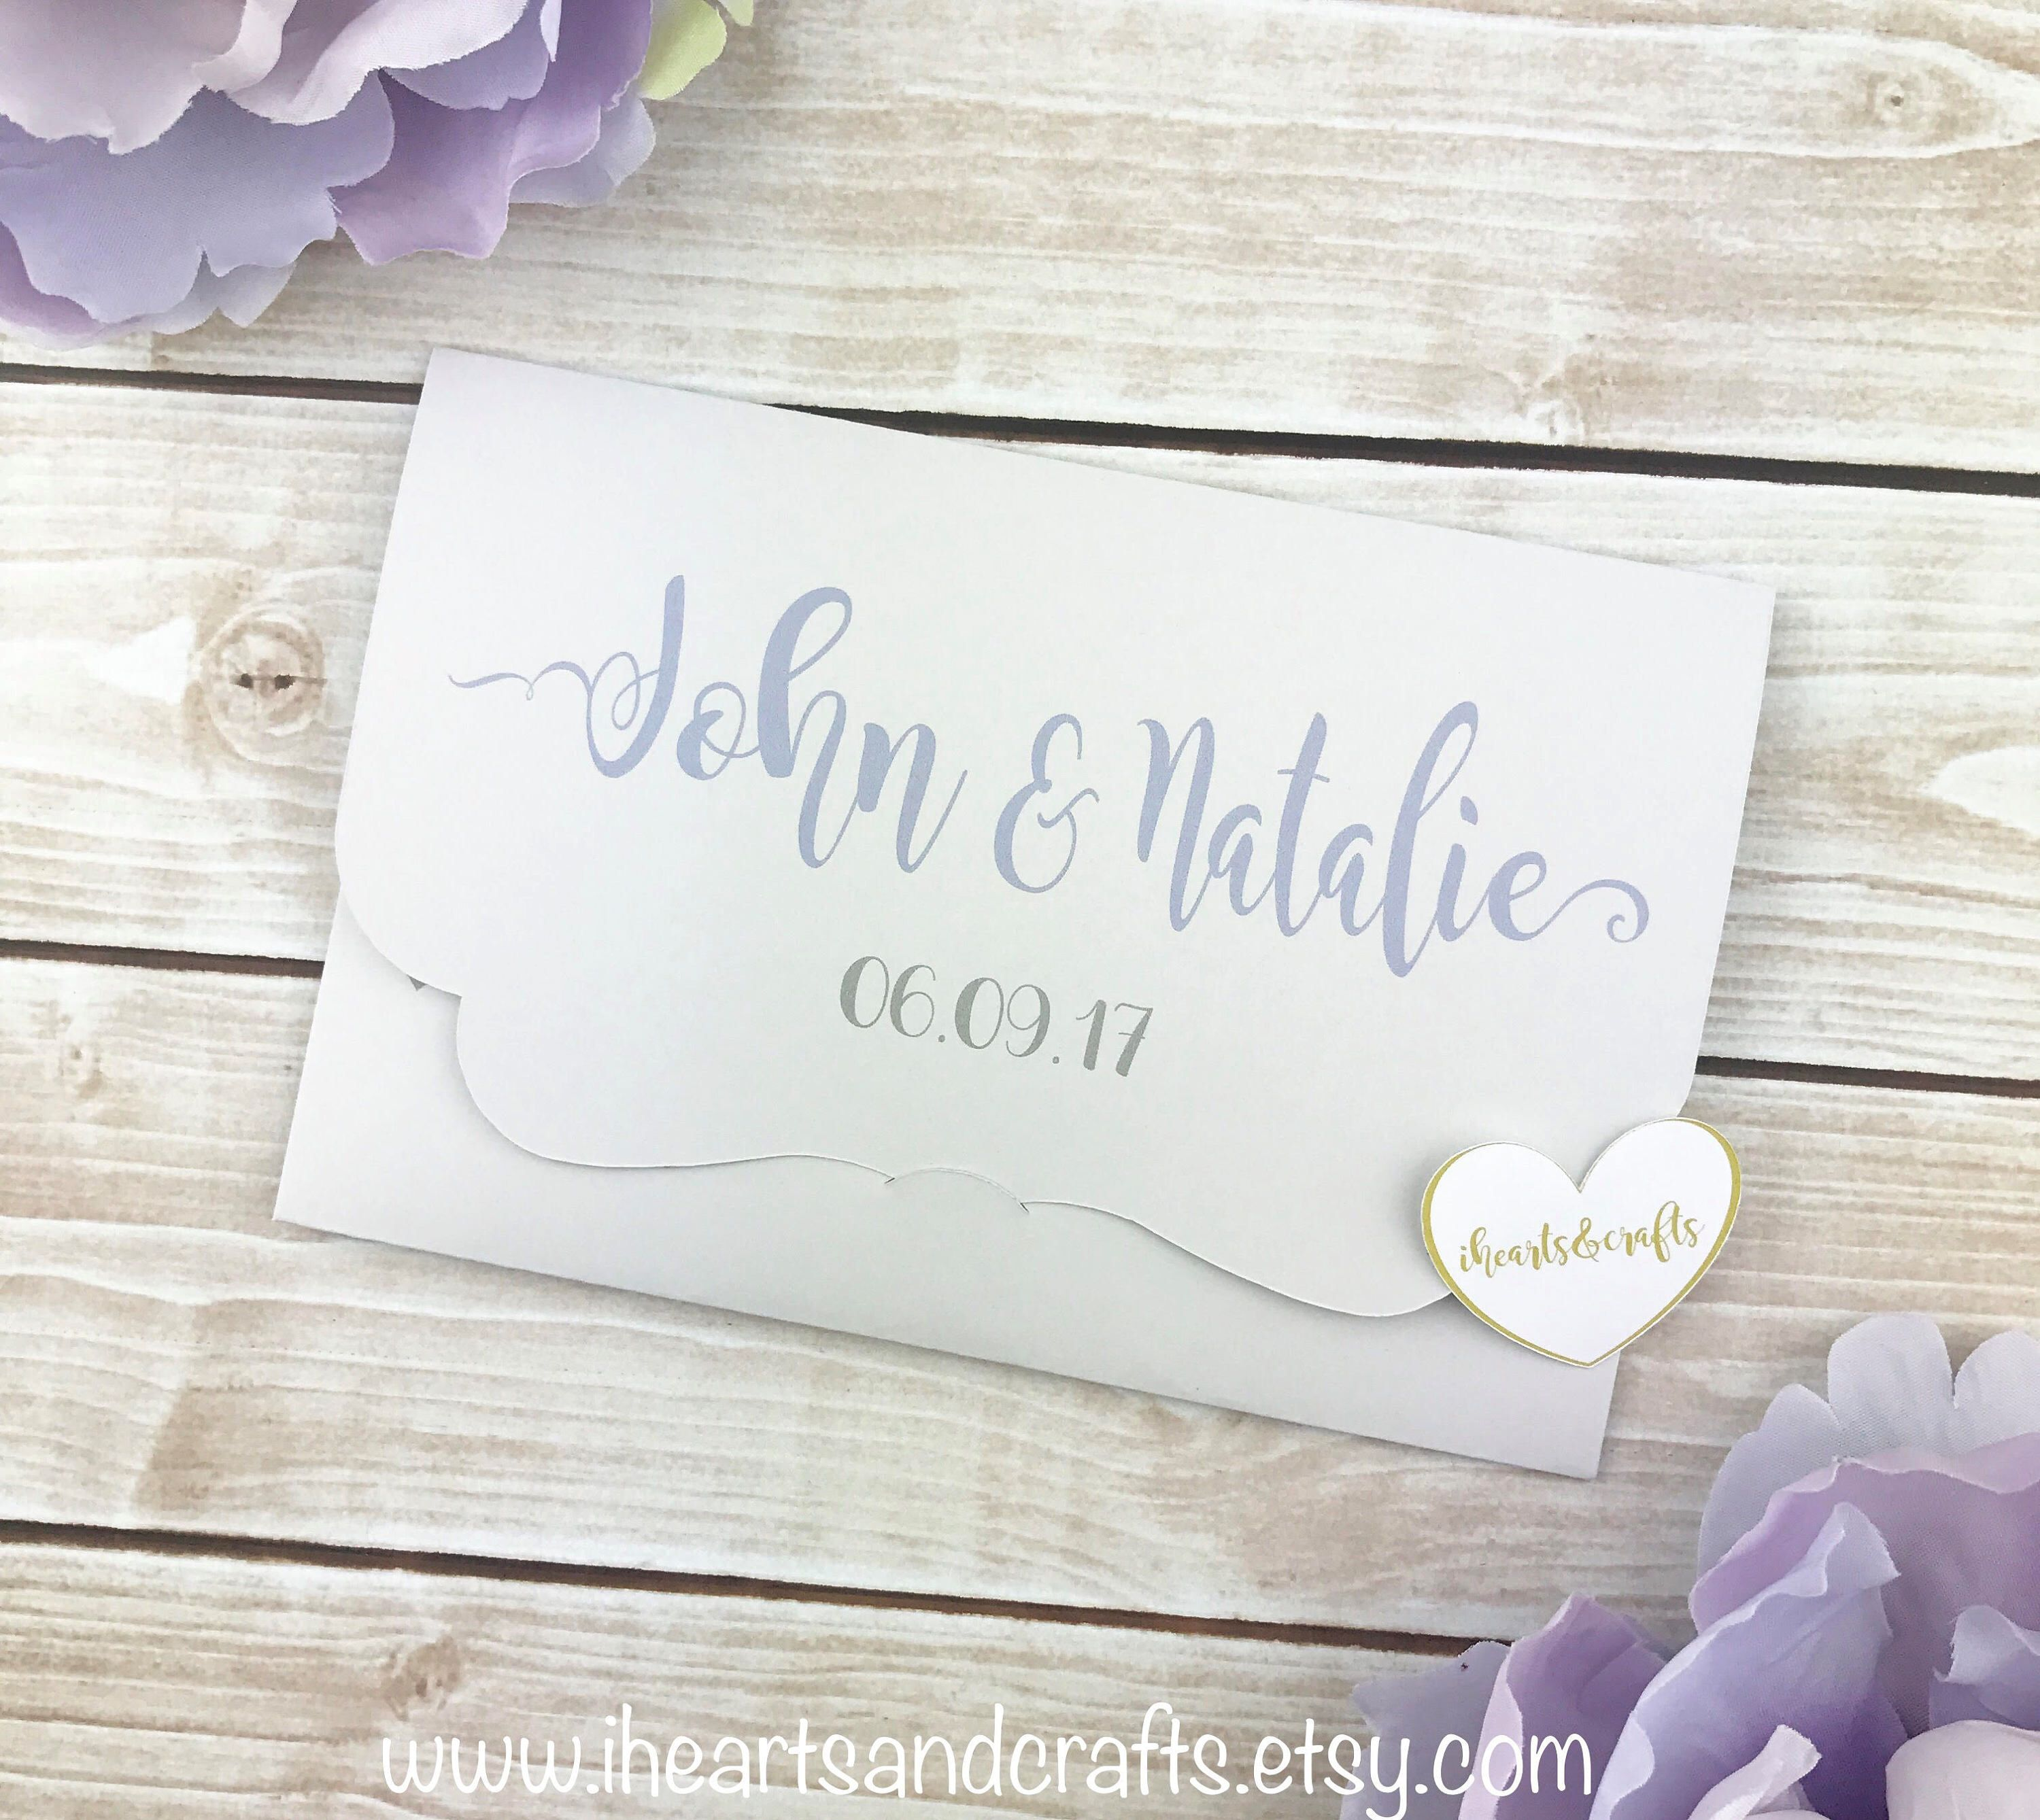 Personalized 4x6 photo booth envelope photo holder party favors ...